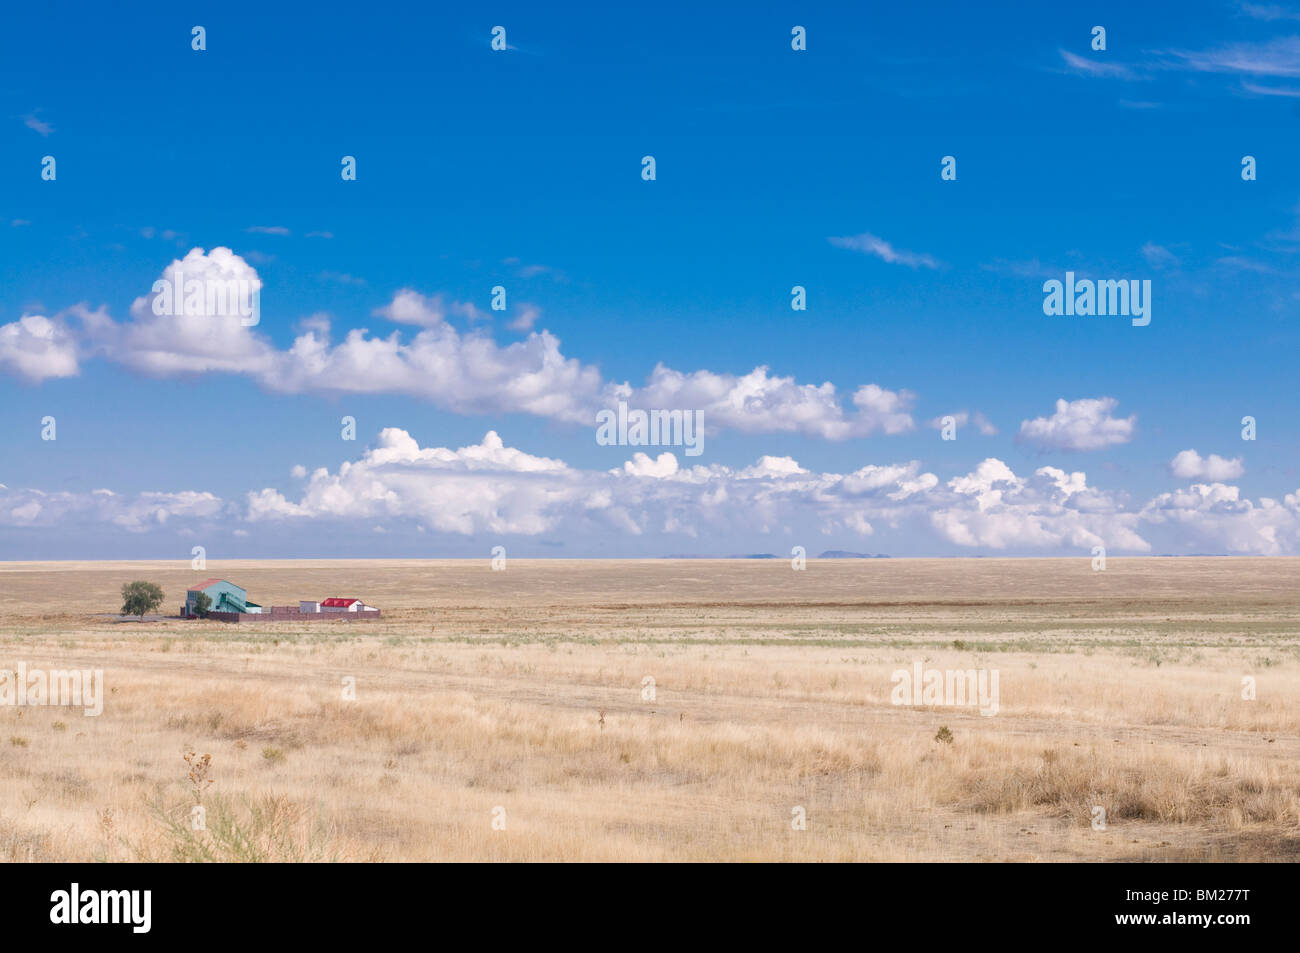 Wheat field with farm, Tamagaly Das, Kazakhstan, Central Asia - Stock Image